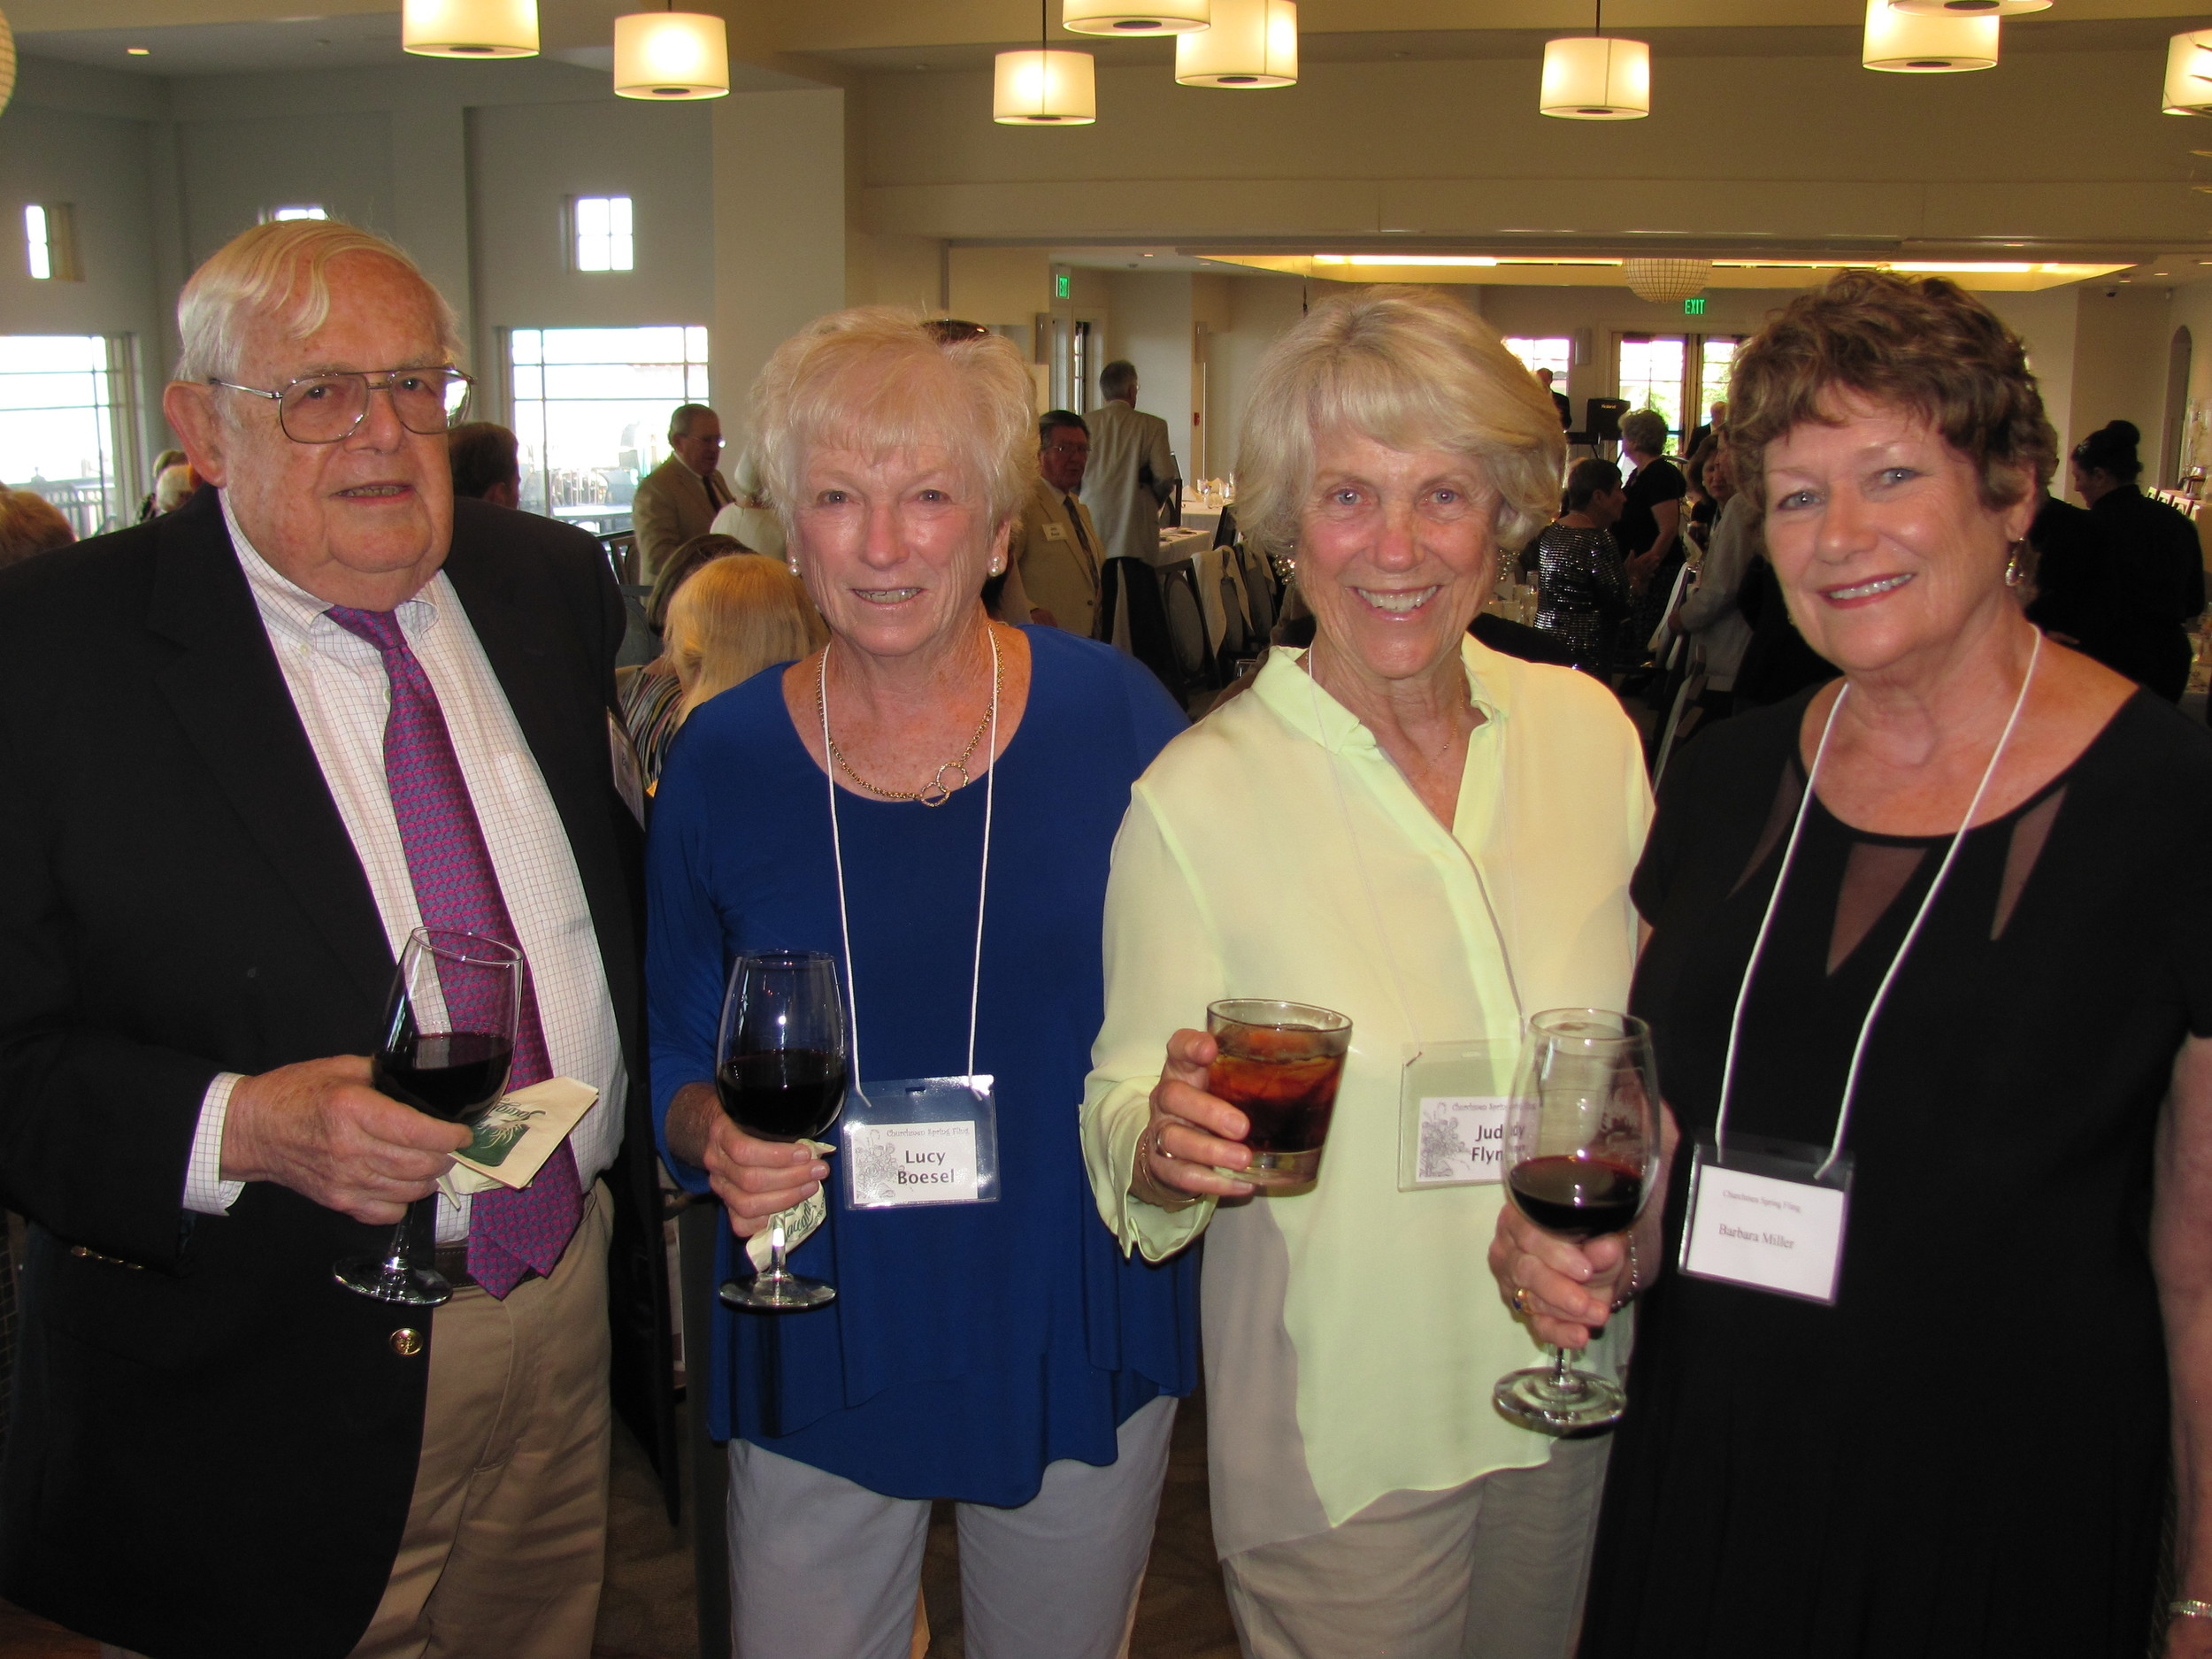 Bud and Lucy Boesel, Judy Flynn and Barbara Miller